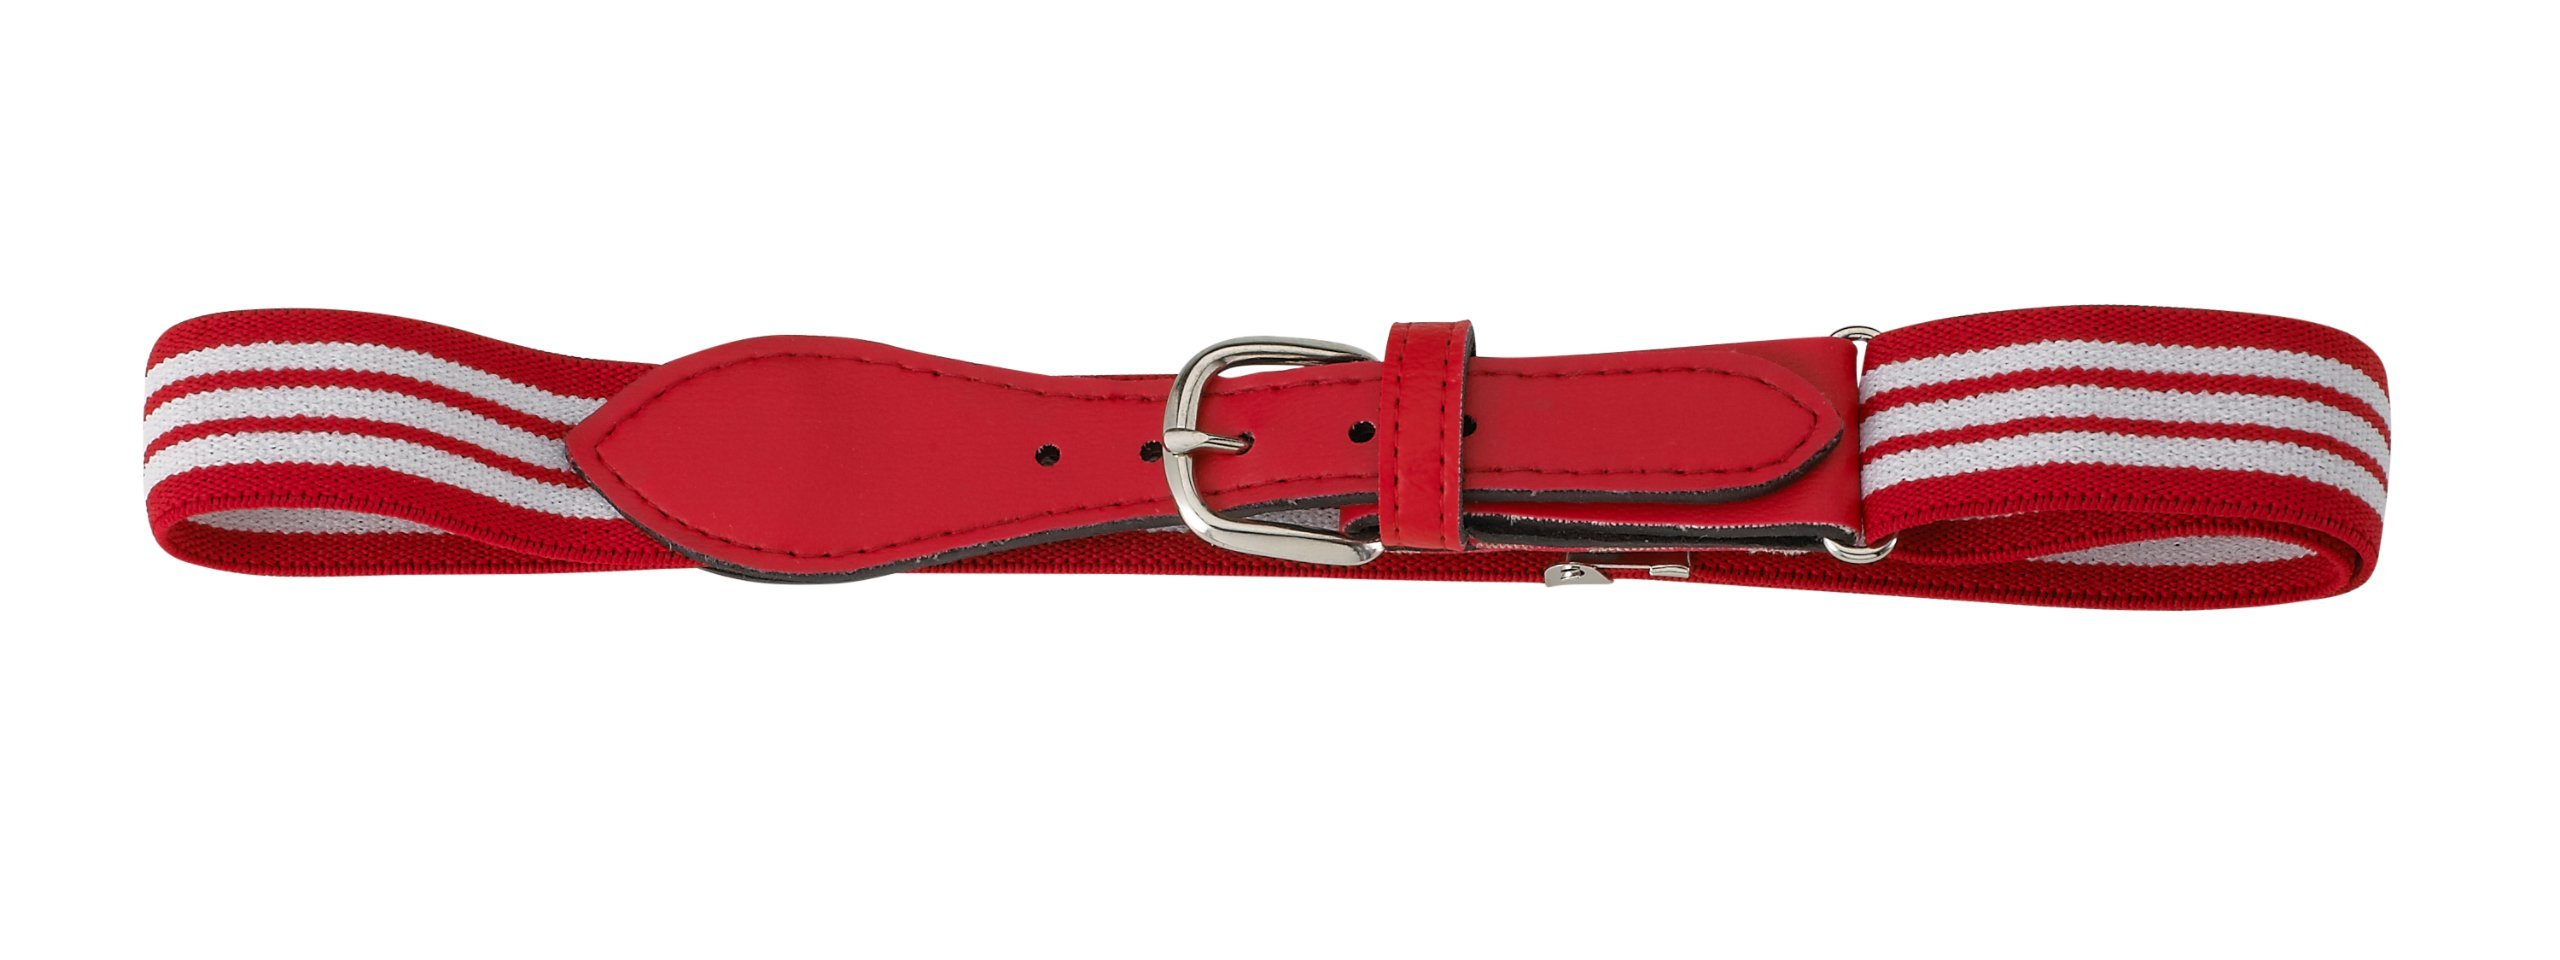 Fancy Kids Striped Belt With Leather Closure (Red/White Striped Red Leather)